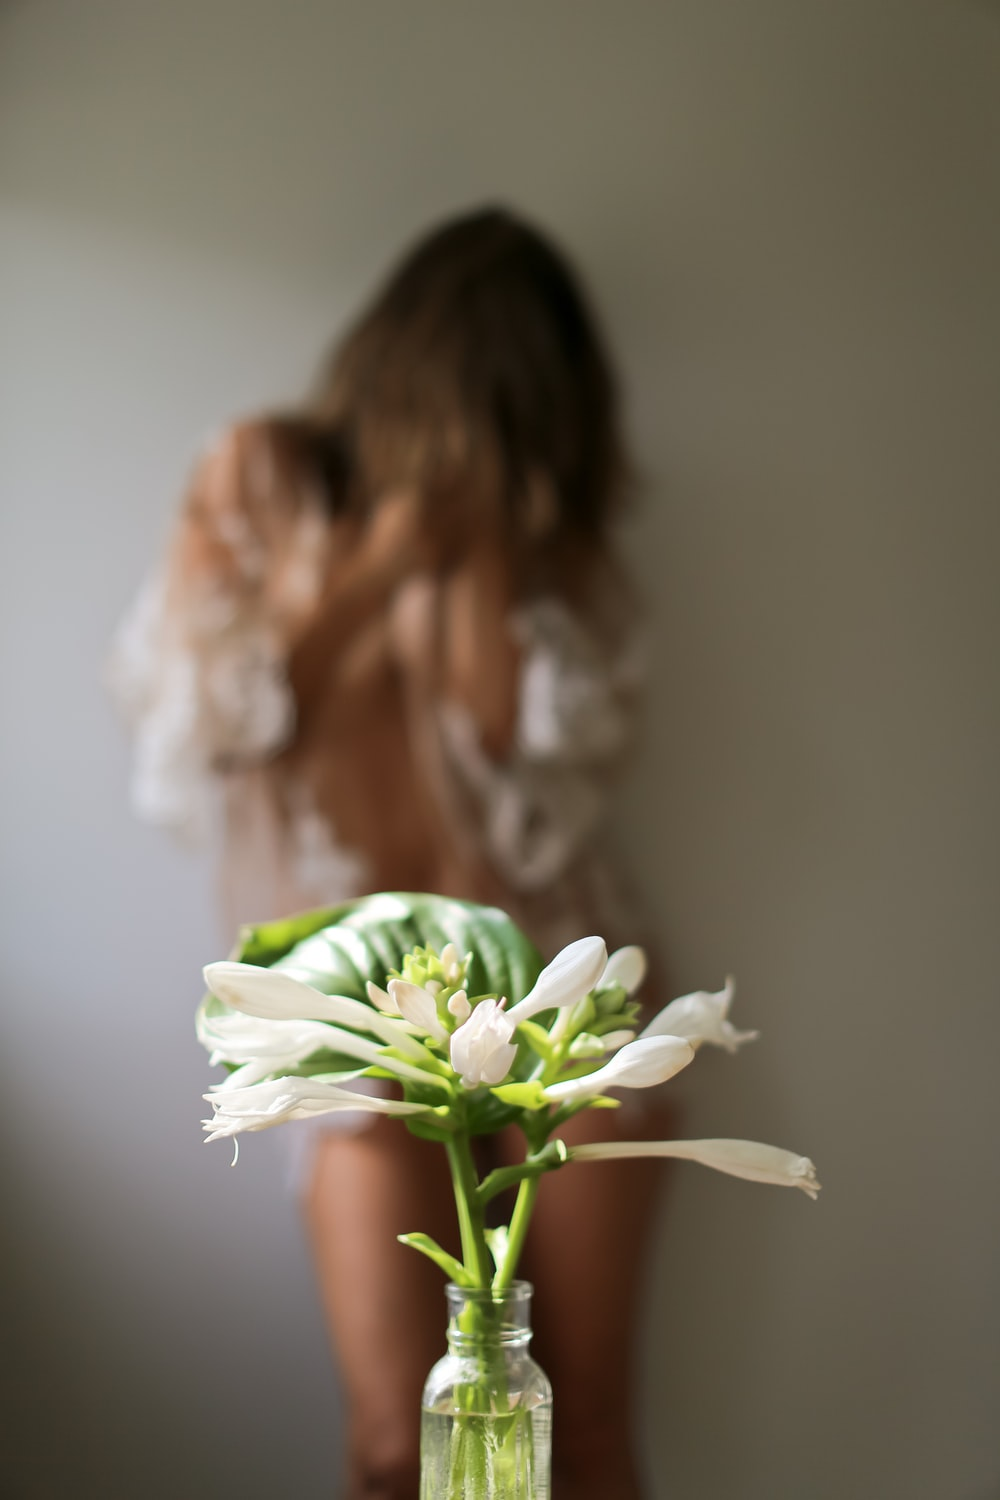 woman holding white flower in close up photography